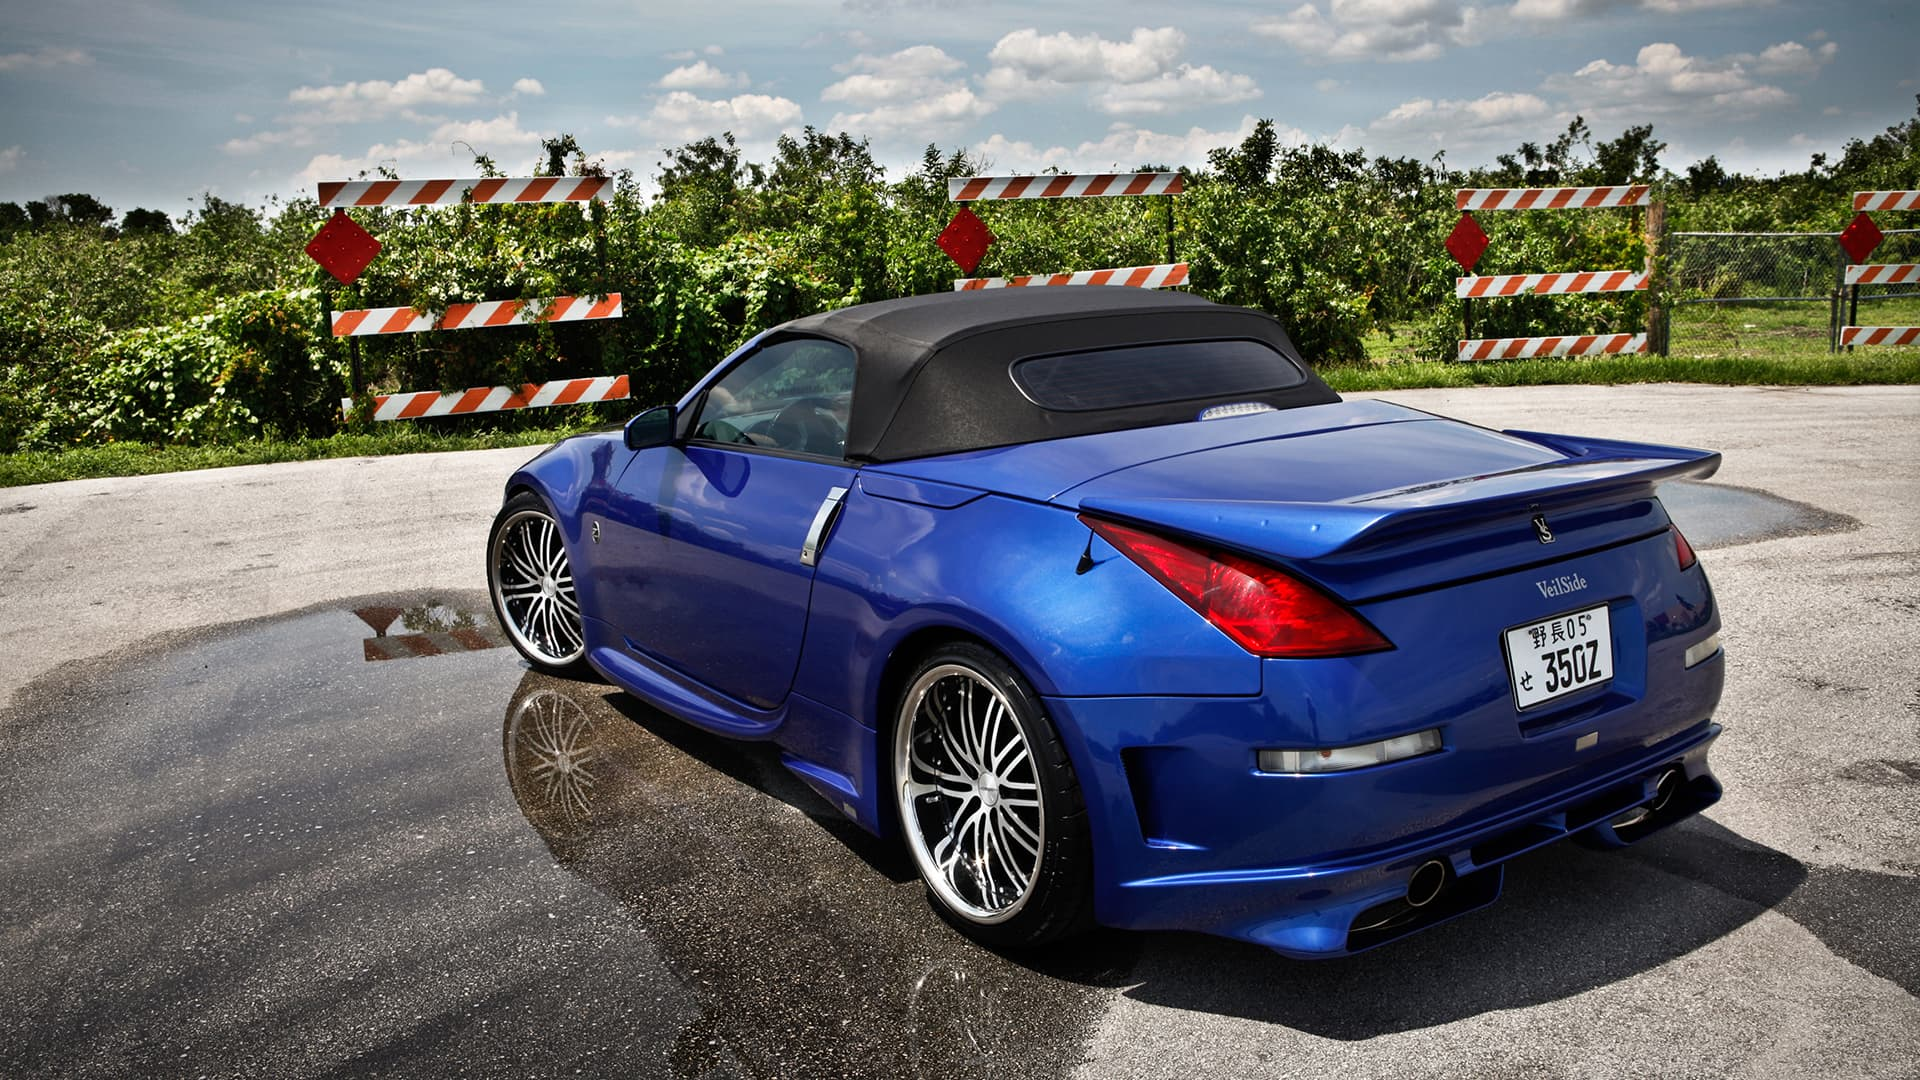 nissan 350z roadster wallpapers hd convertible blue silver black. Black Bedroom Furniture Sets. Home Design Ideas